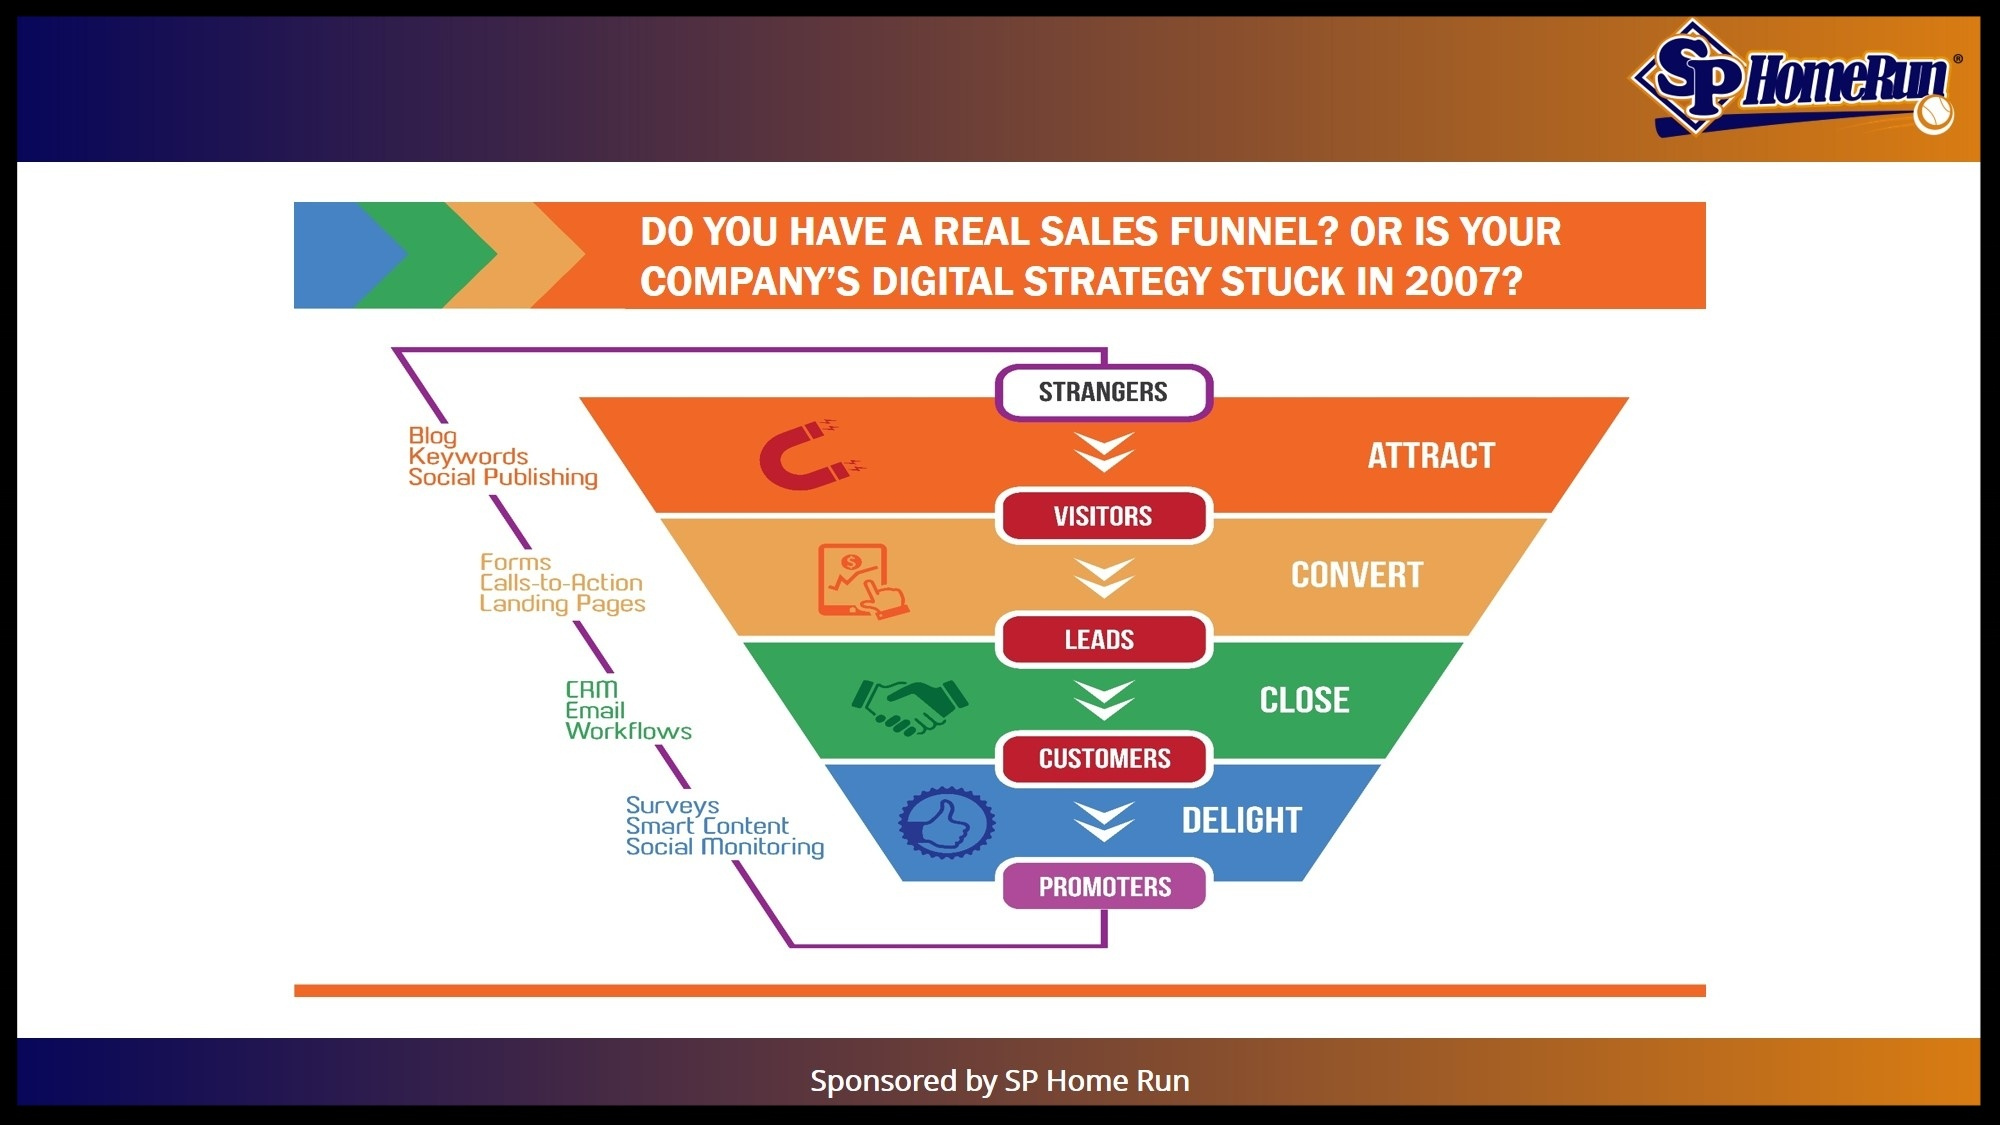 Do you have a real sales funnel? Or is your company's digital strategy stuck in 2007?